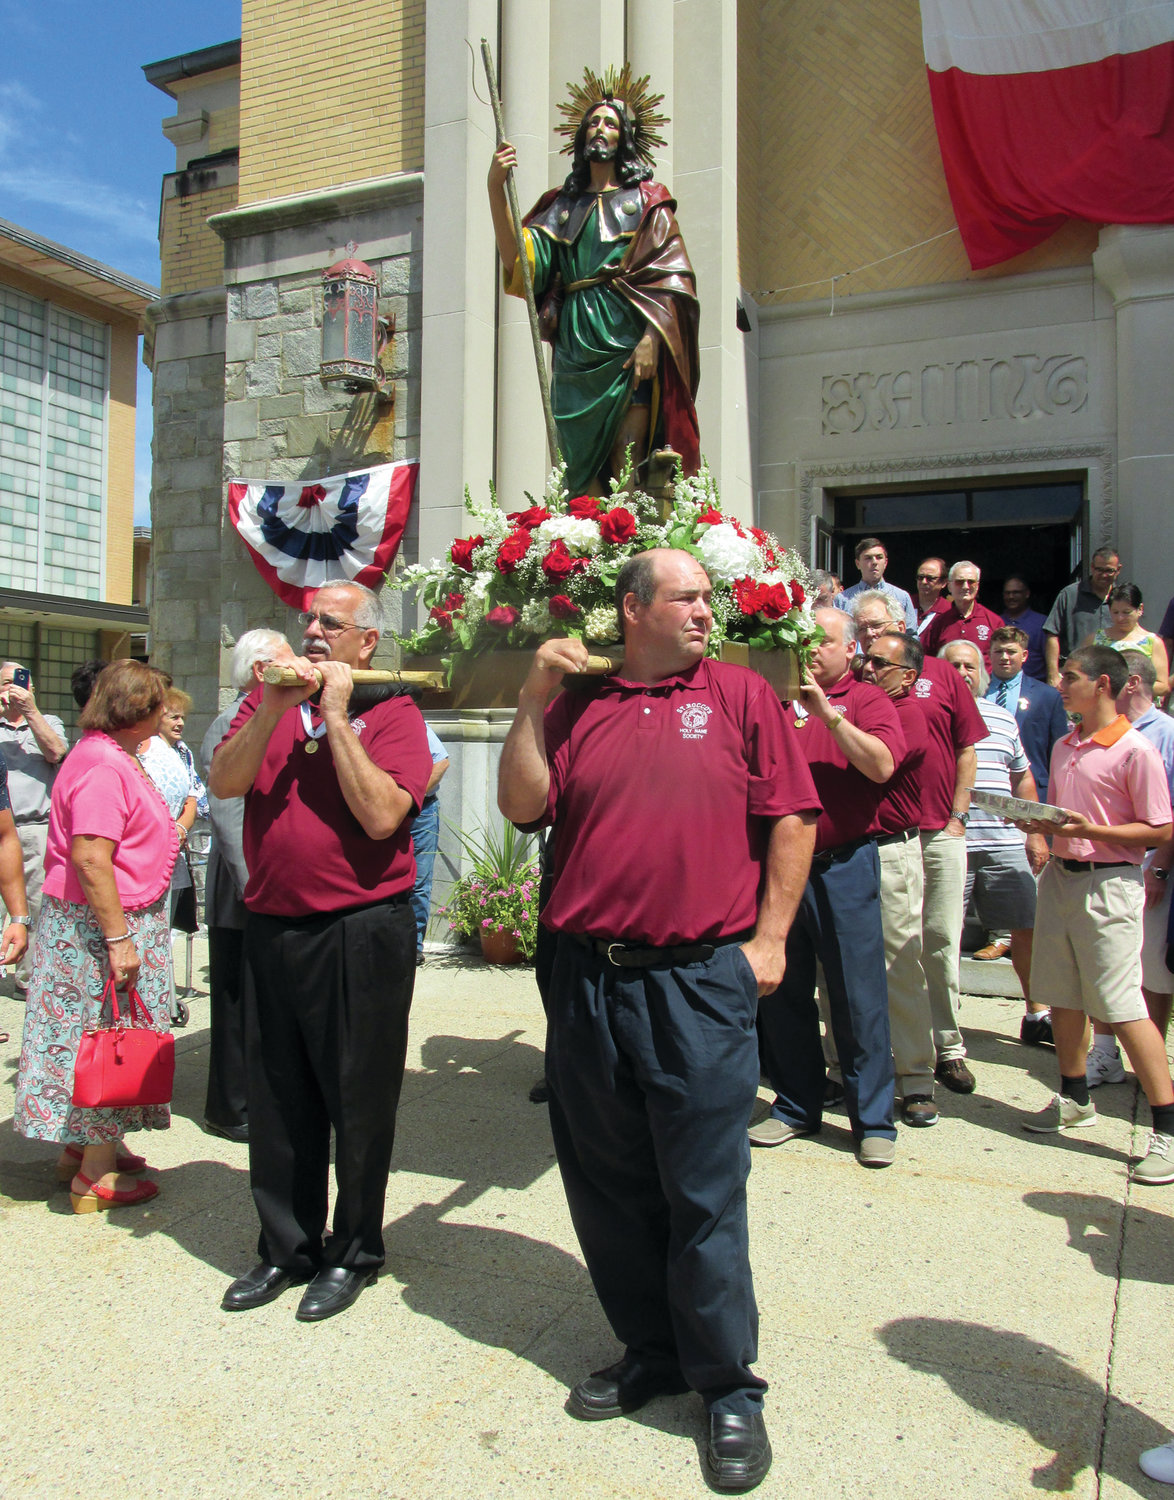 SPECIAL STAFF: Saint Rocco's Feast and Festival co-chairman Richard Montella, front left, and members of the Johnston parish will carry the statute of the patron saint during the annual procession through the streets on Sunday, Aug. 18, in Johnston.